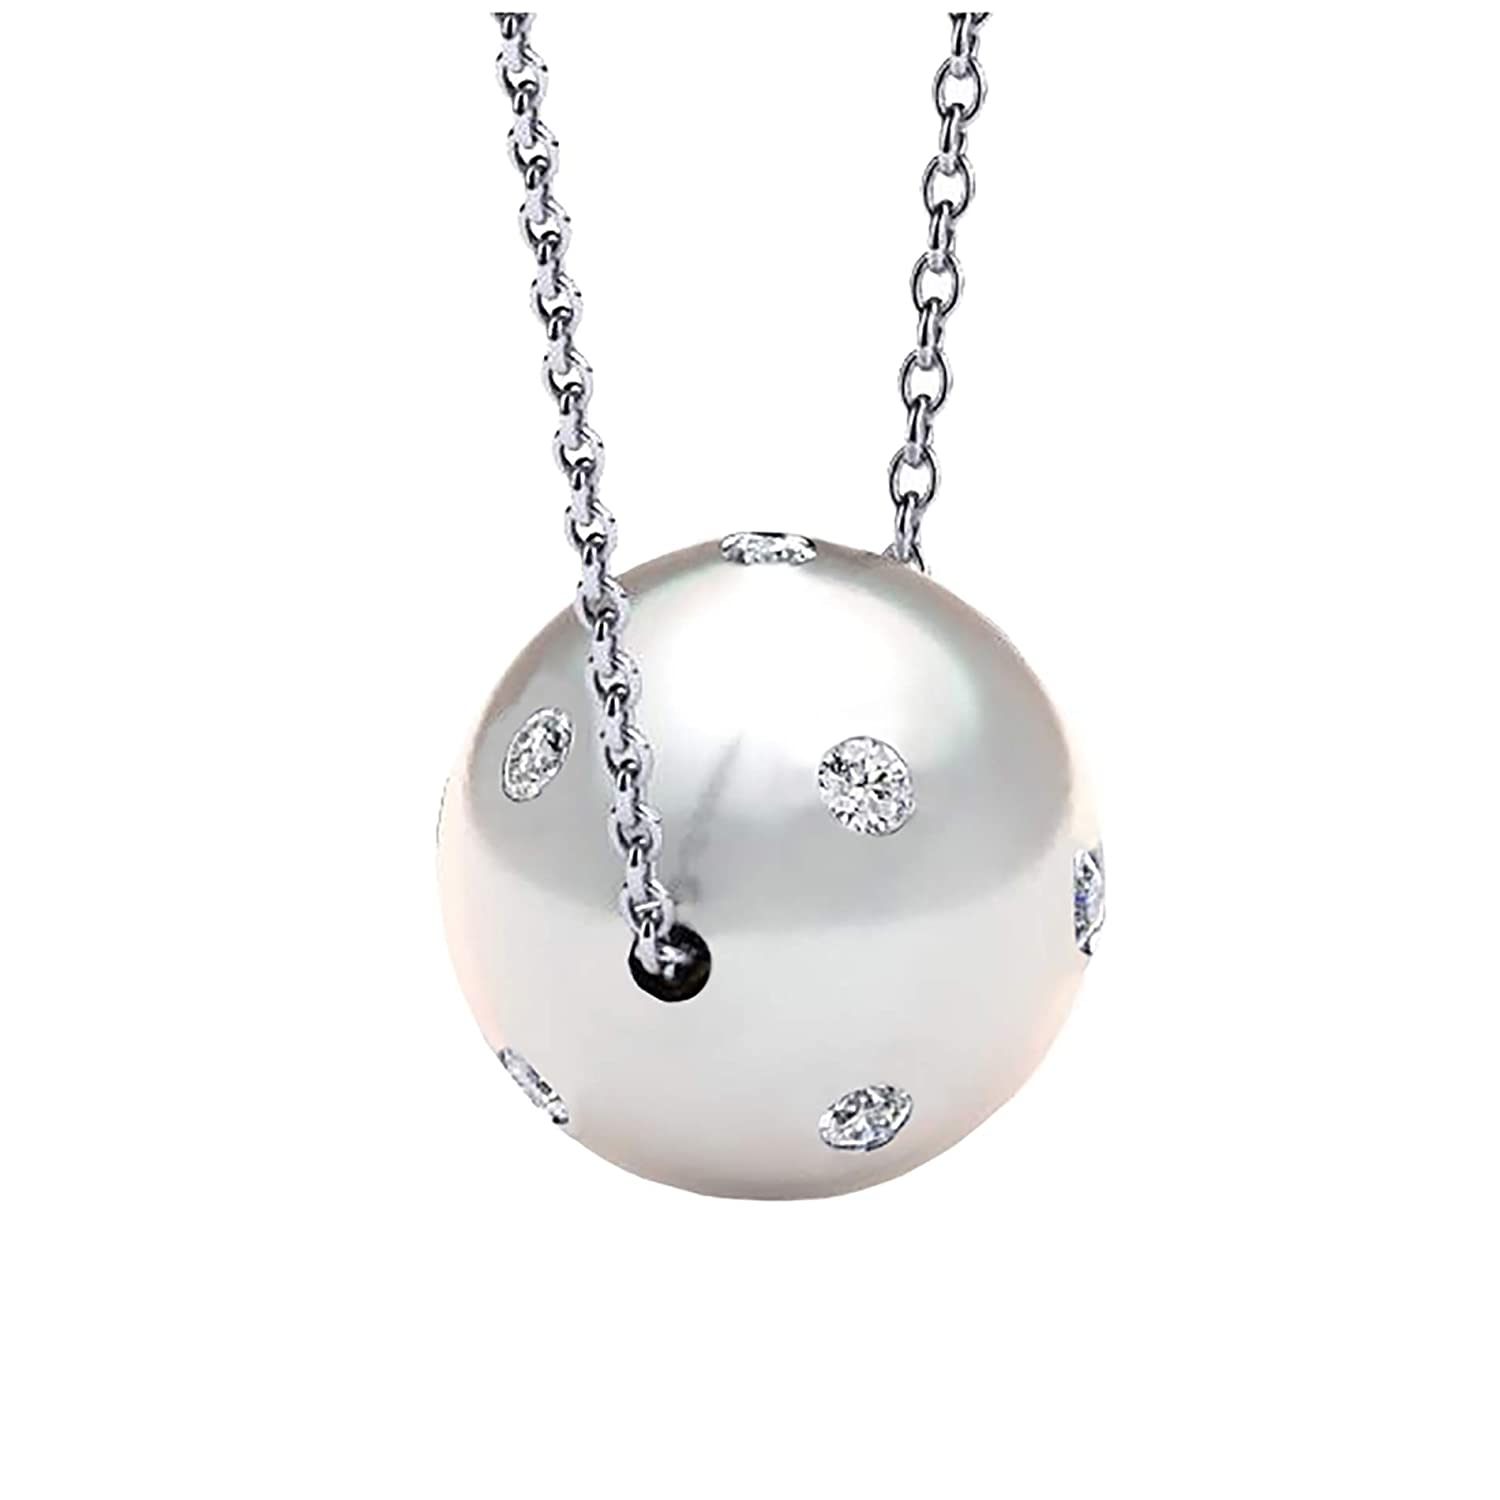 AUBREY LEE Simulated Pearl with Crystal Ball Pendant for Women on 18 Cable Chain Necklace for Women in Rhodium Plated Brass